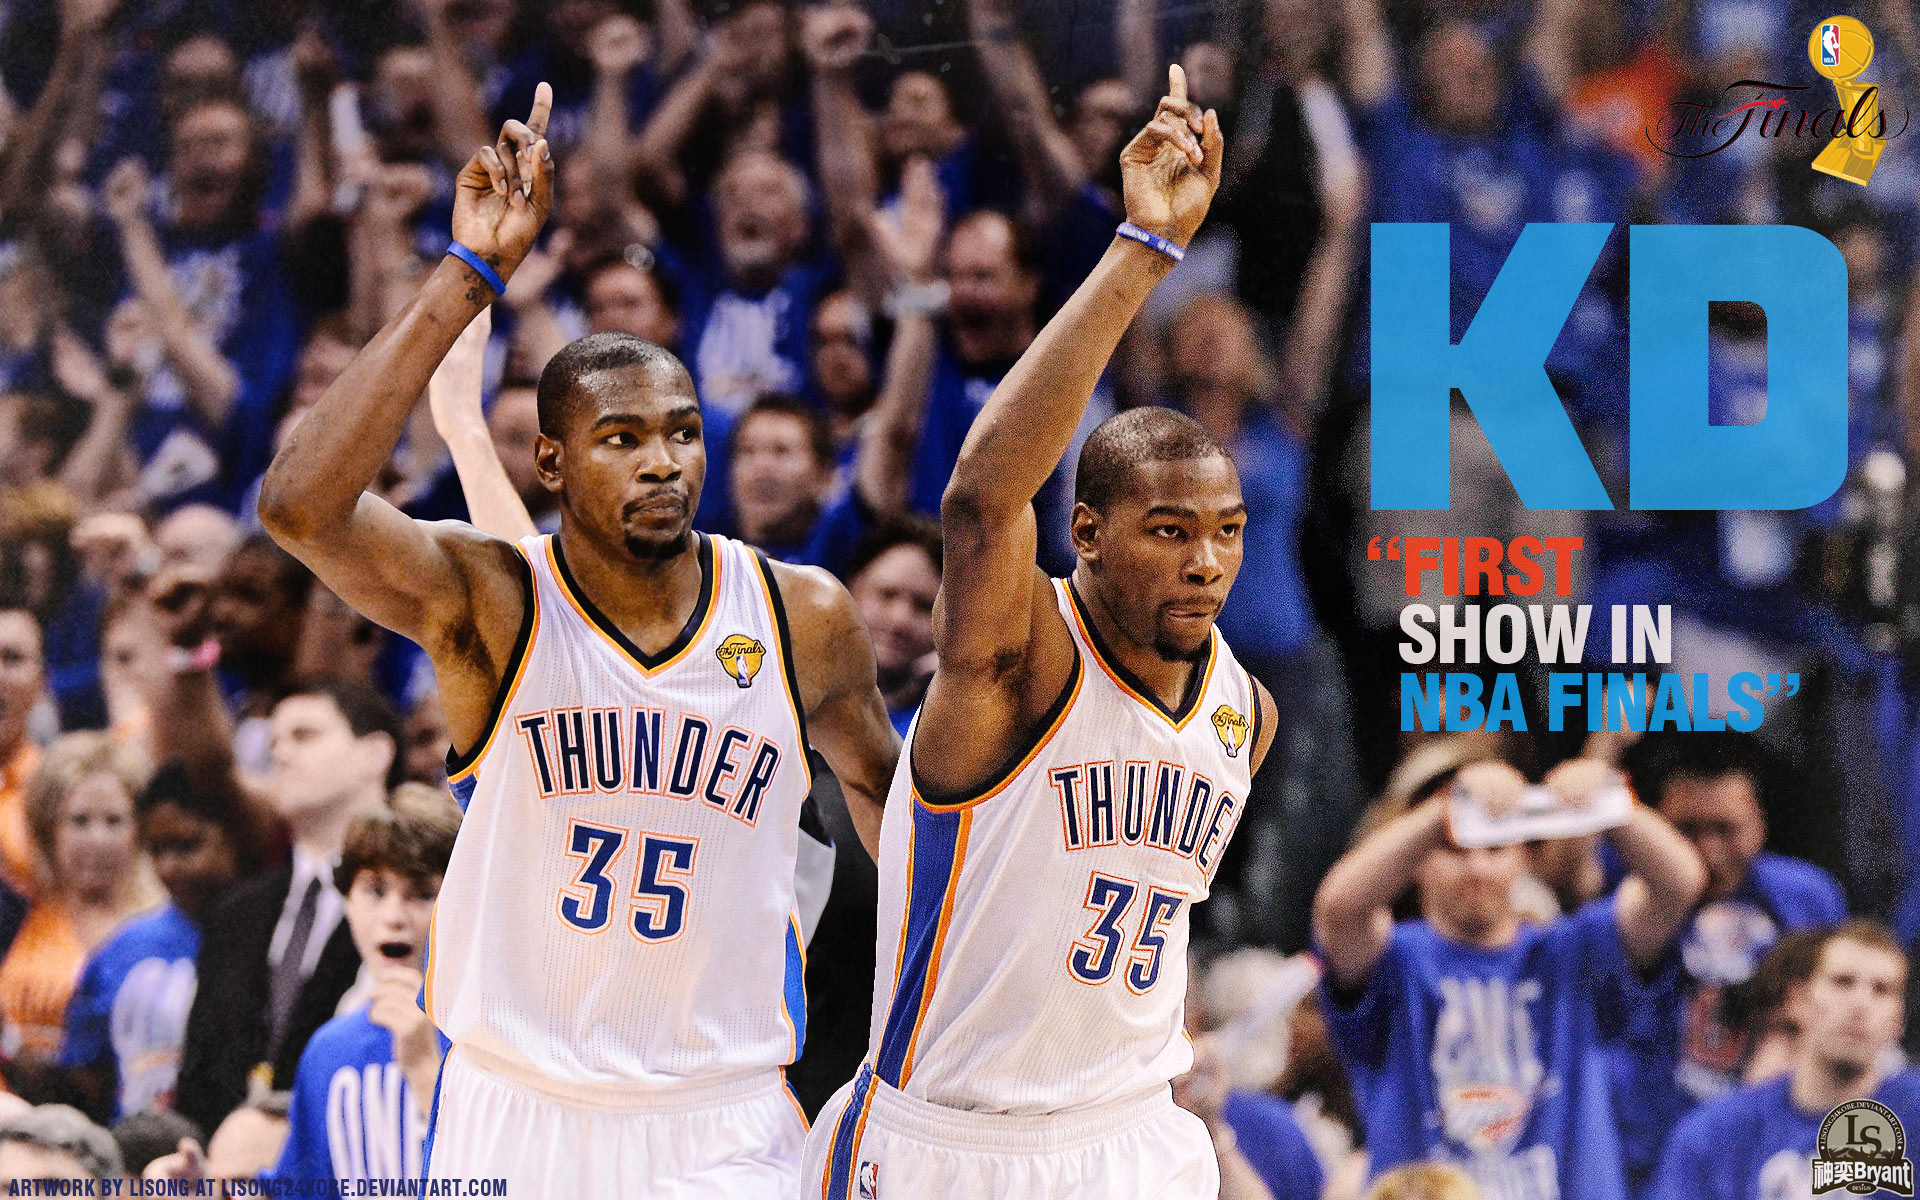 Kevin Durant And Russell Westbrook HD Wallpapers 8 | Kevin Durant And Russell  Westbrook HD Wallpapers | Pinterest | Russell westbrook, Kevin durant and  Nba …